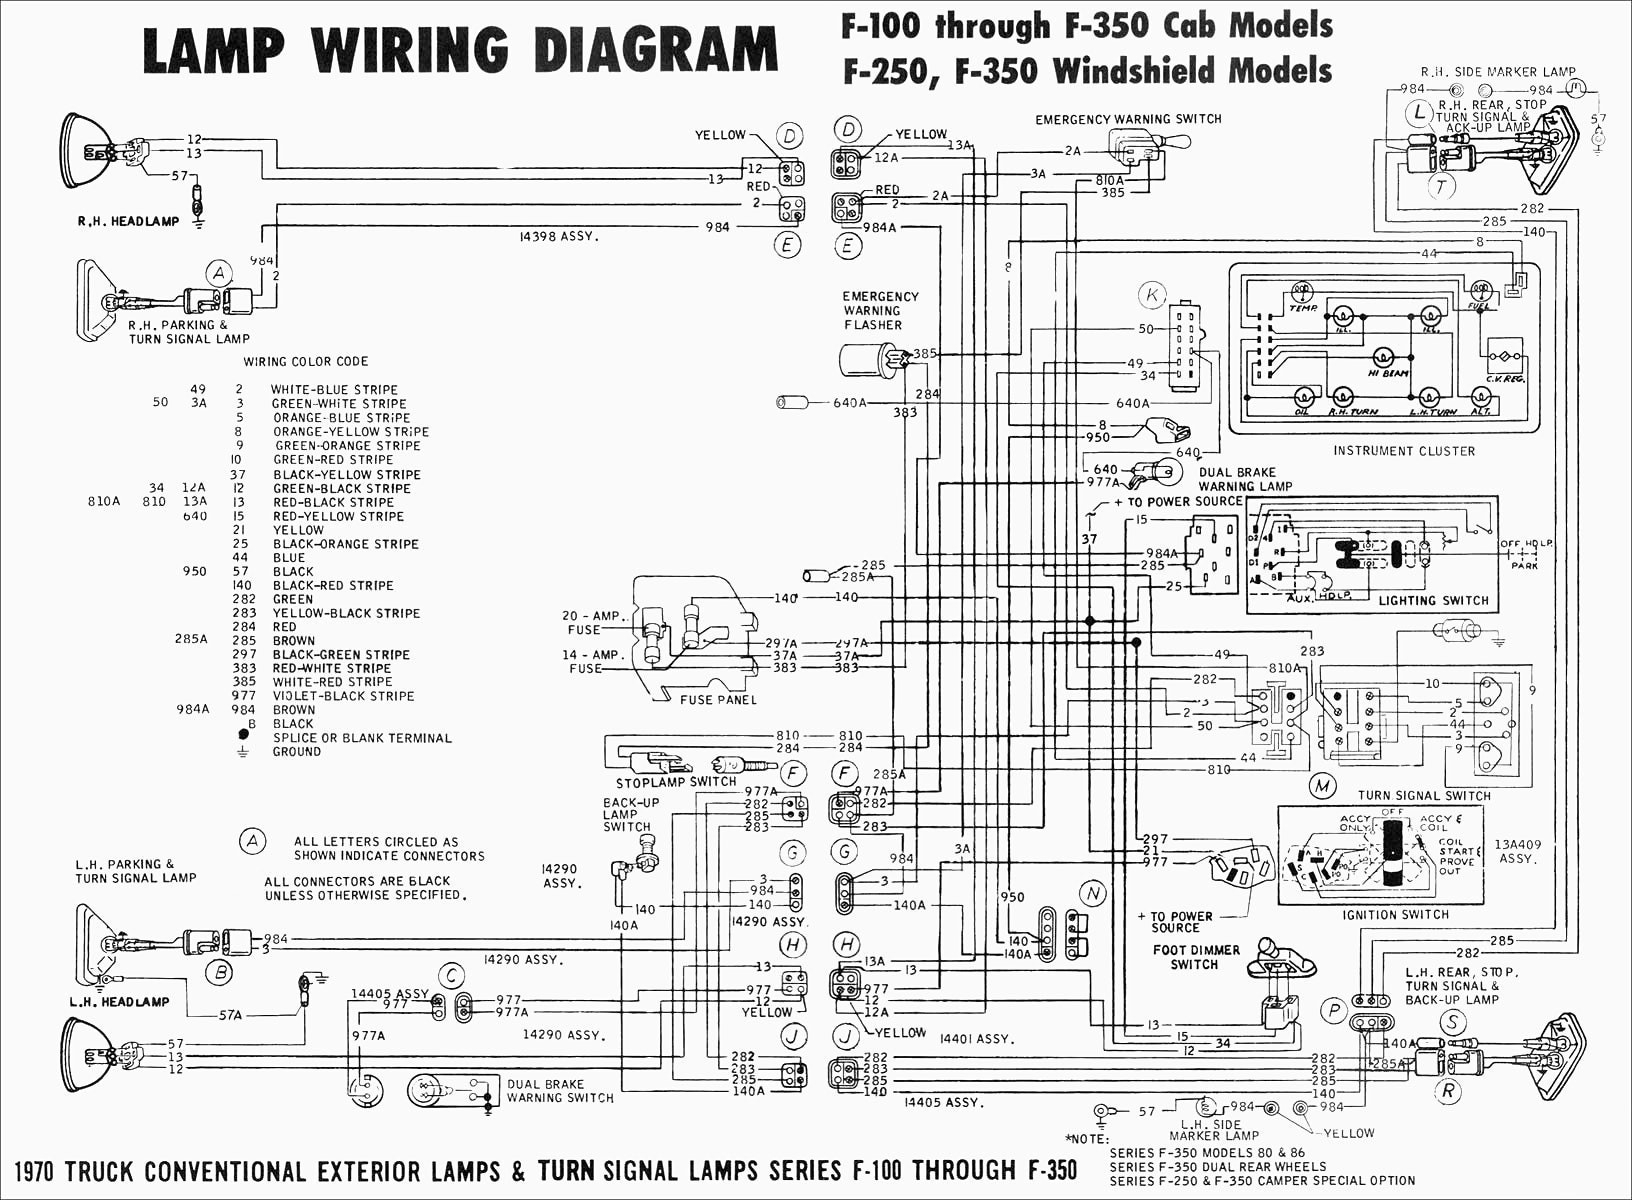 1997 Jeep Grand Cherokee Headlight Wiring Diagram